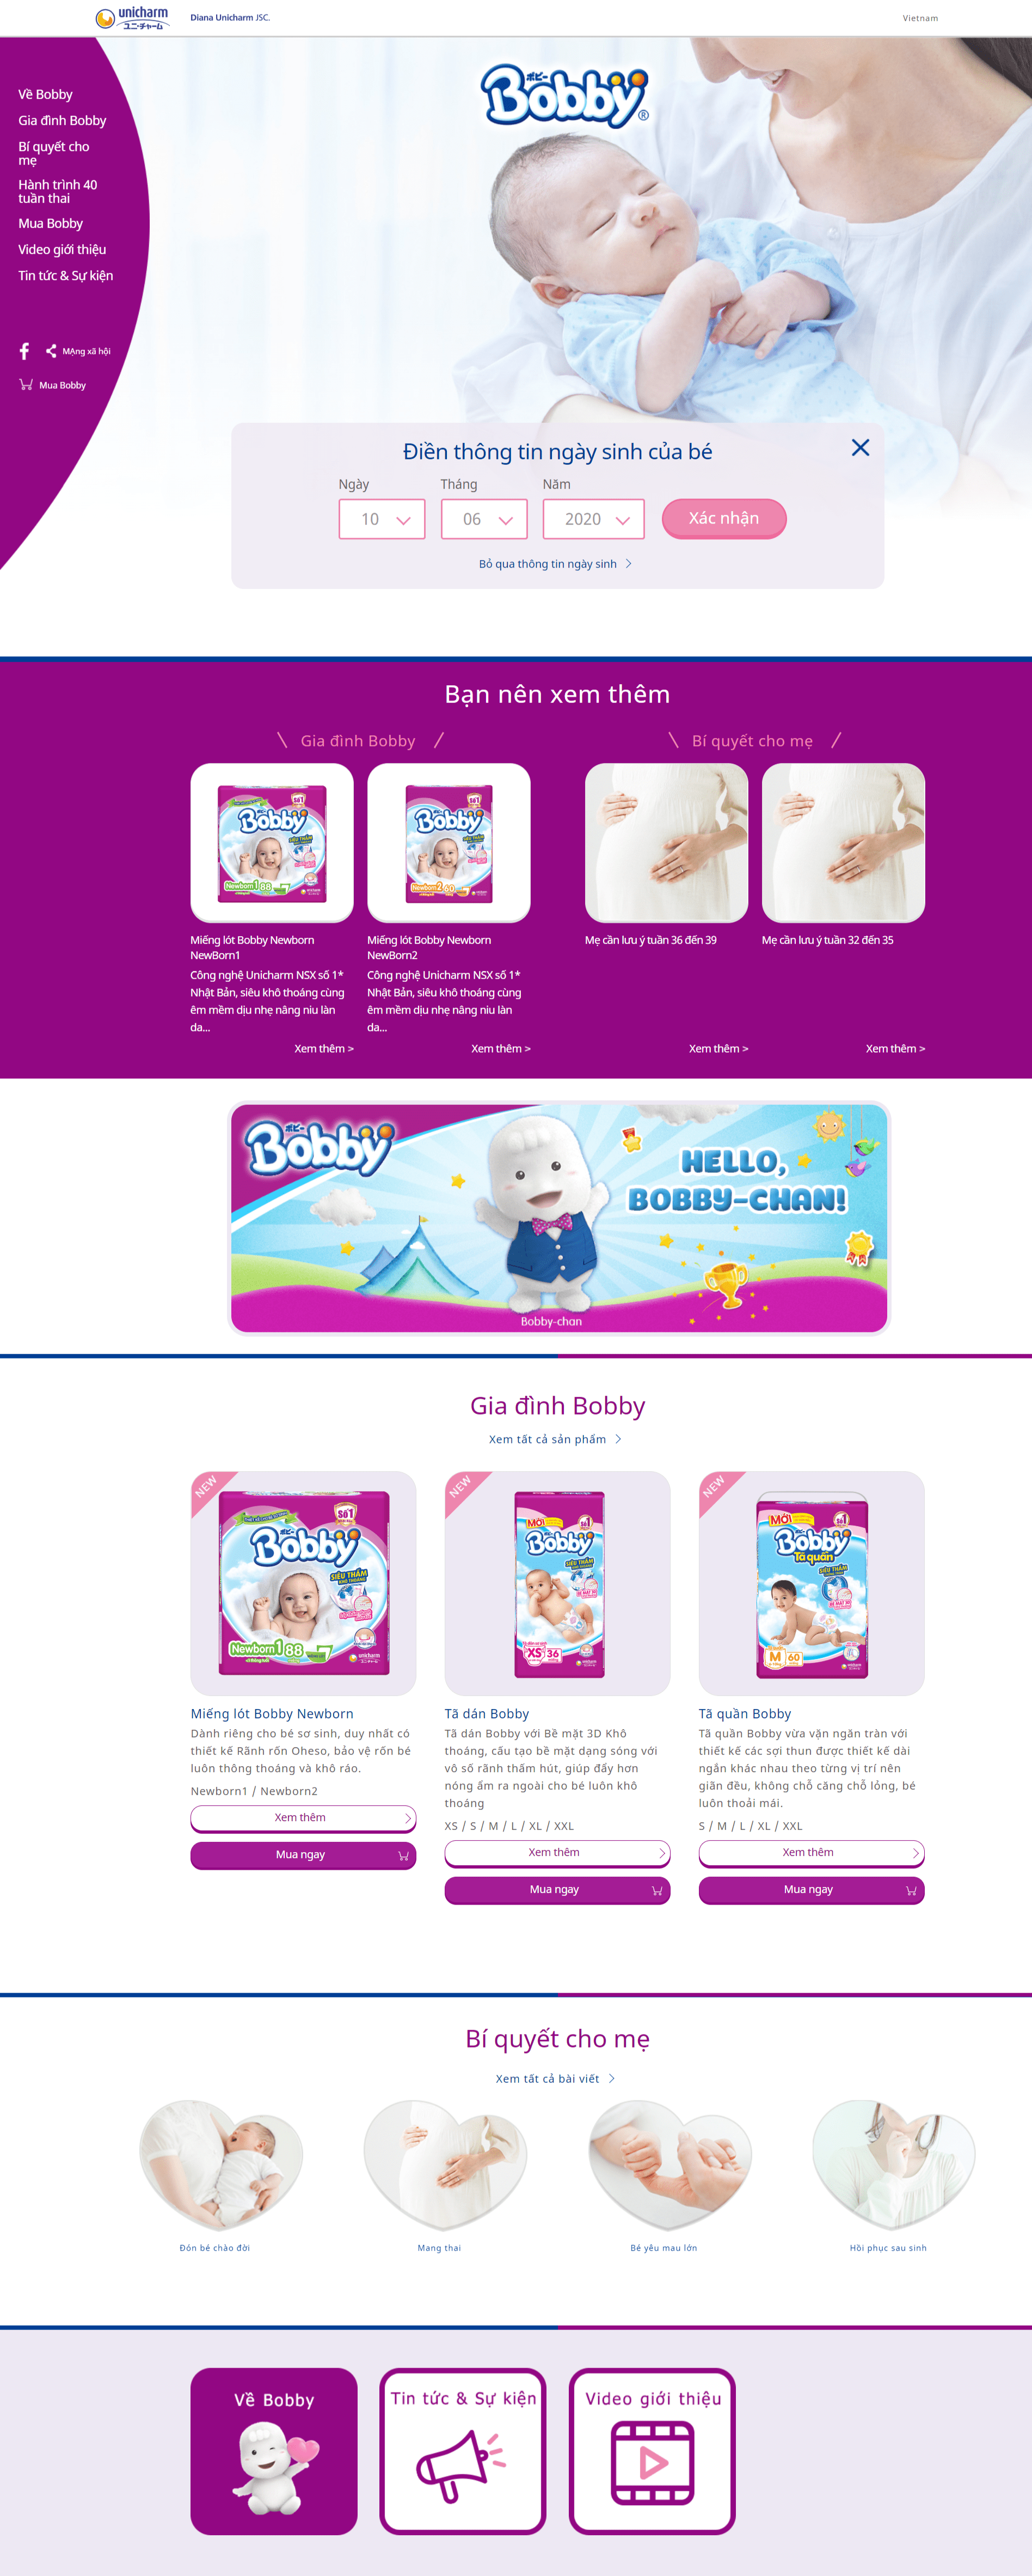 Lam-website-bobby